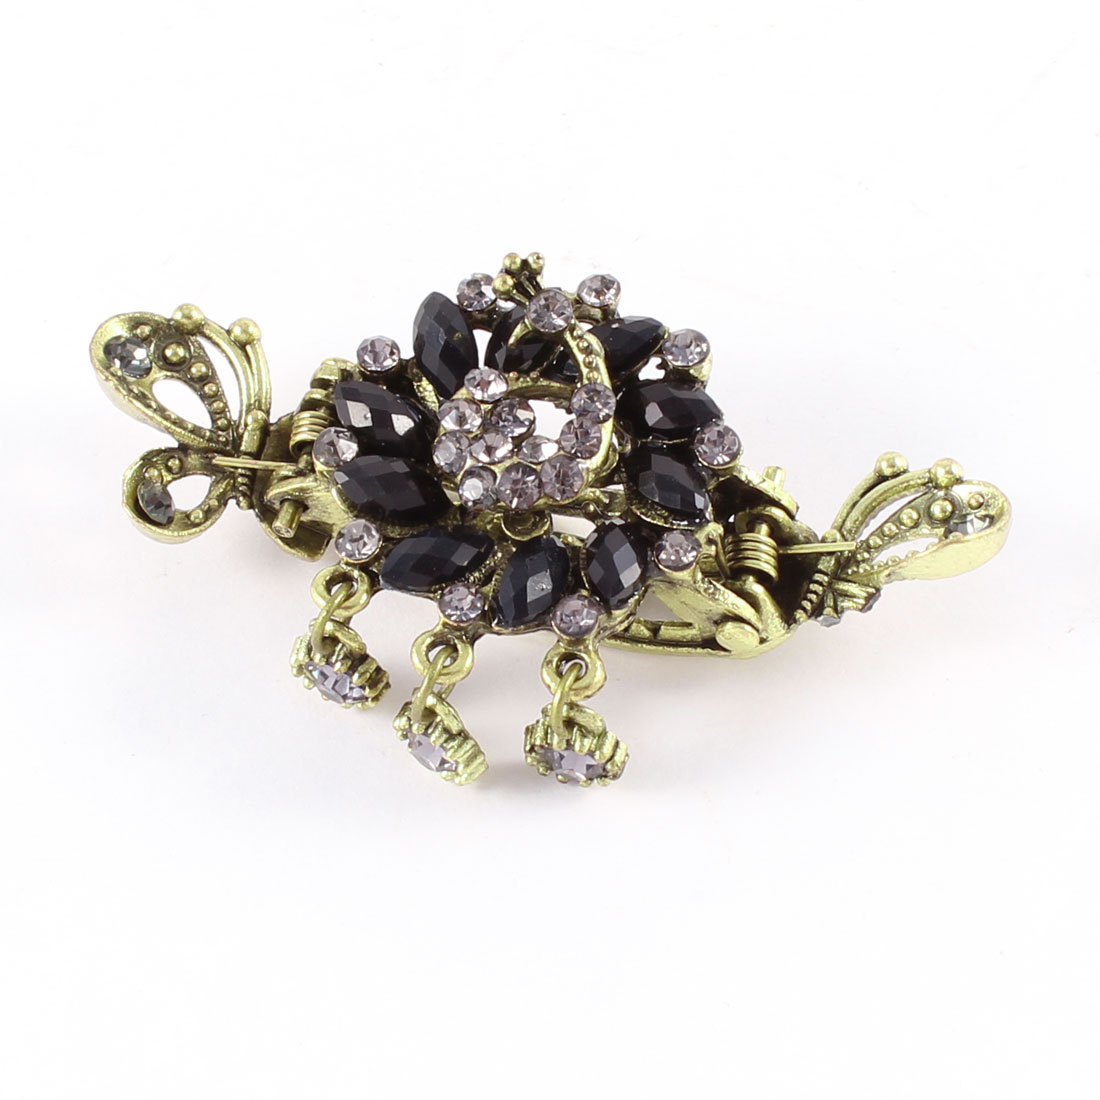 Bronze Tone Black Rhinestones Oval Beads Detailing Metal Hair Claw Clamp